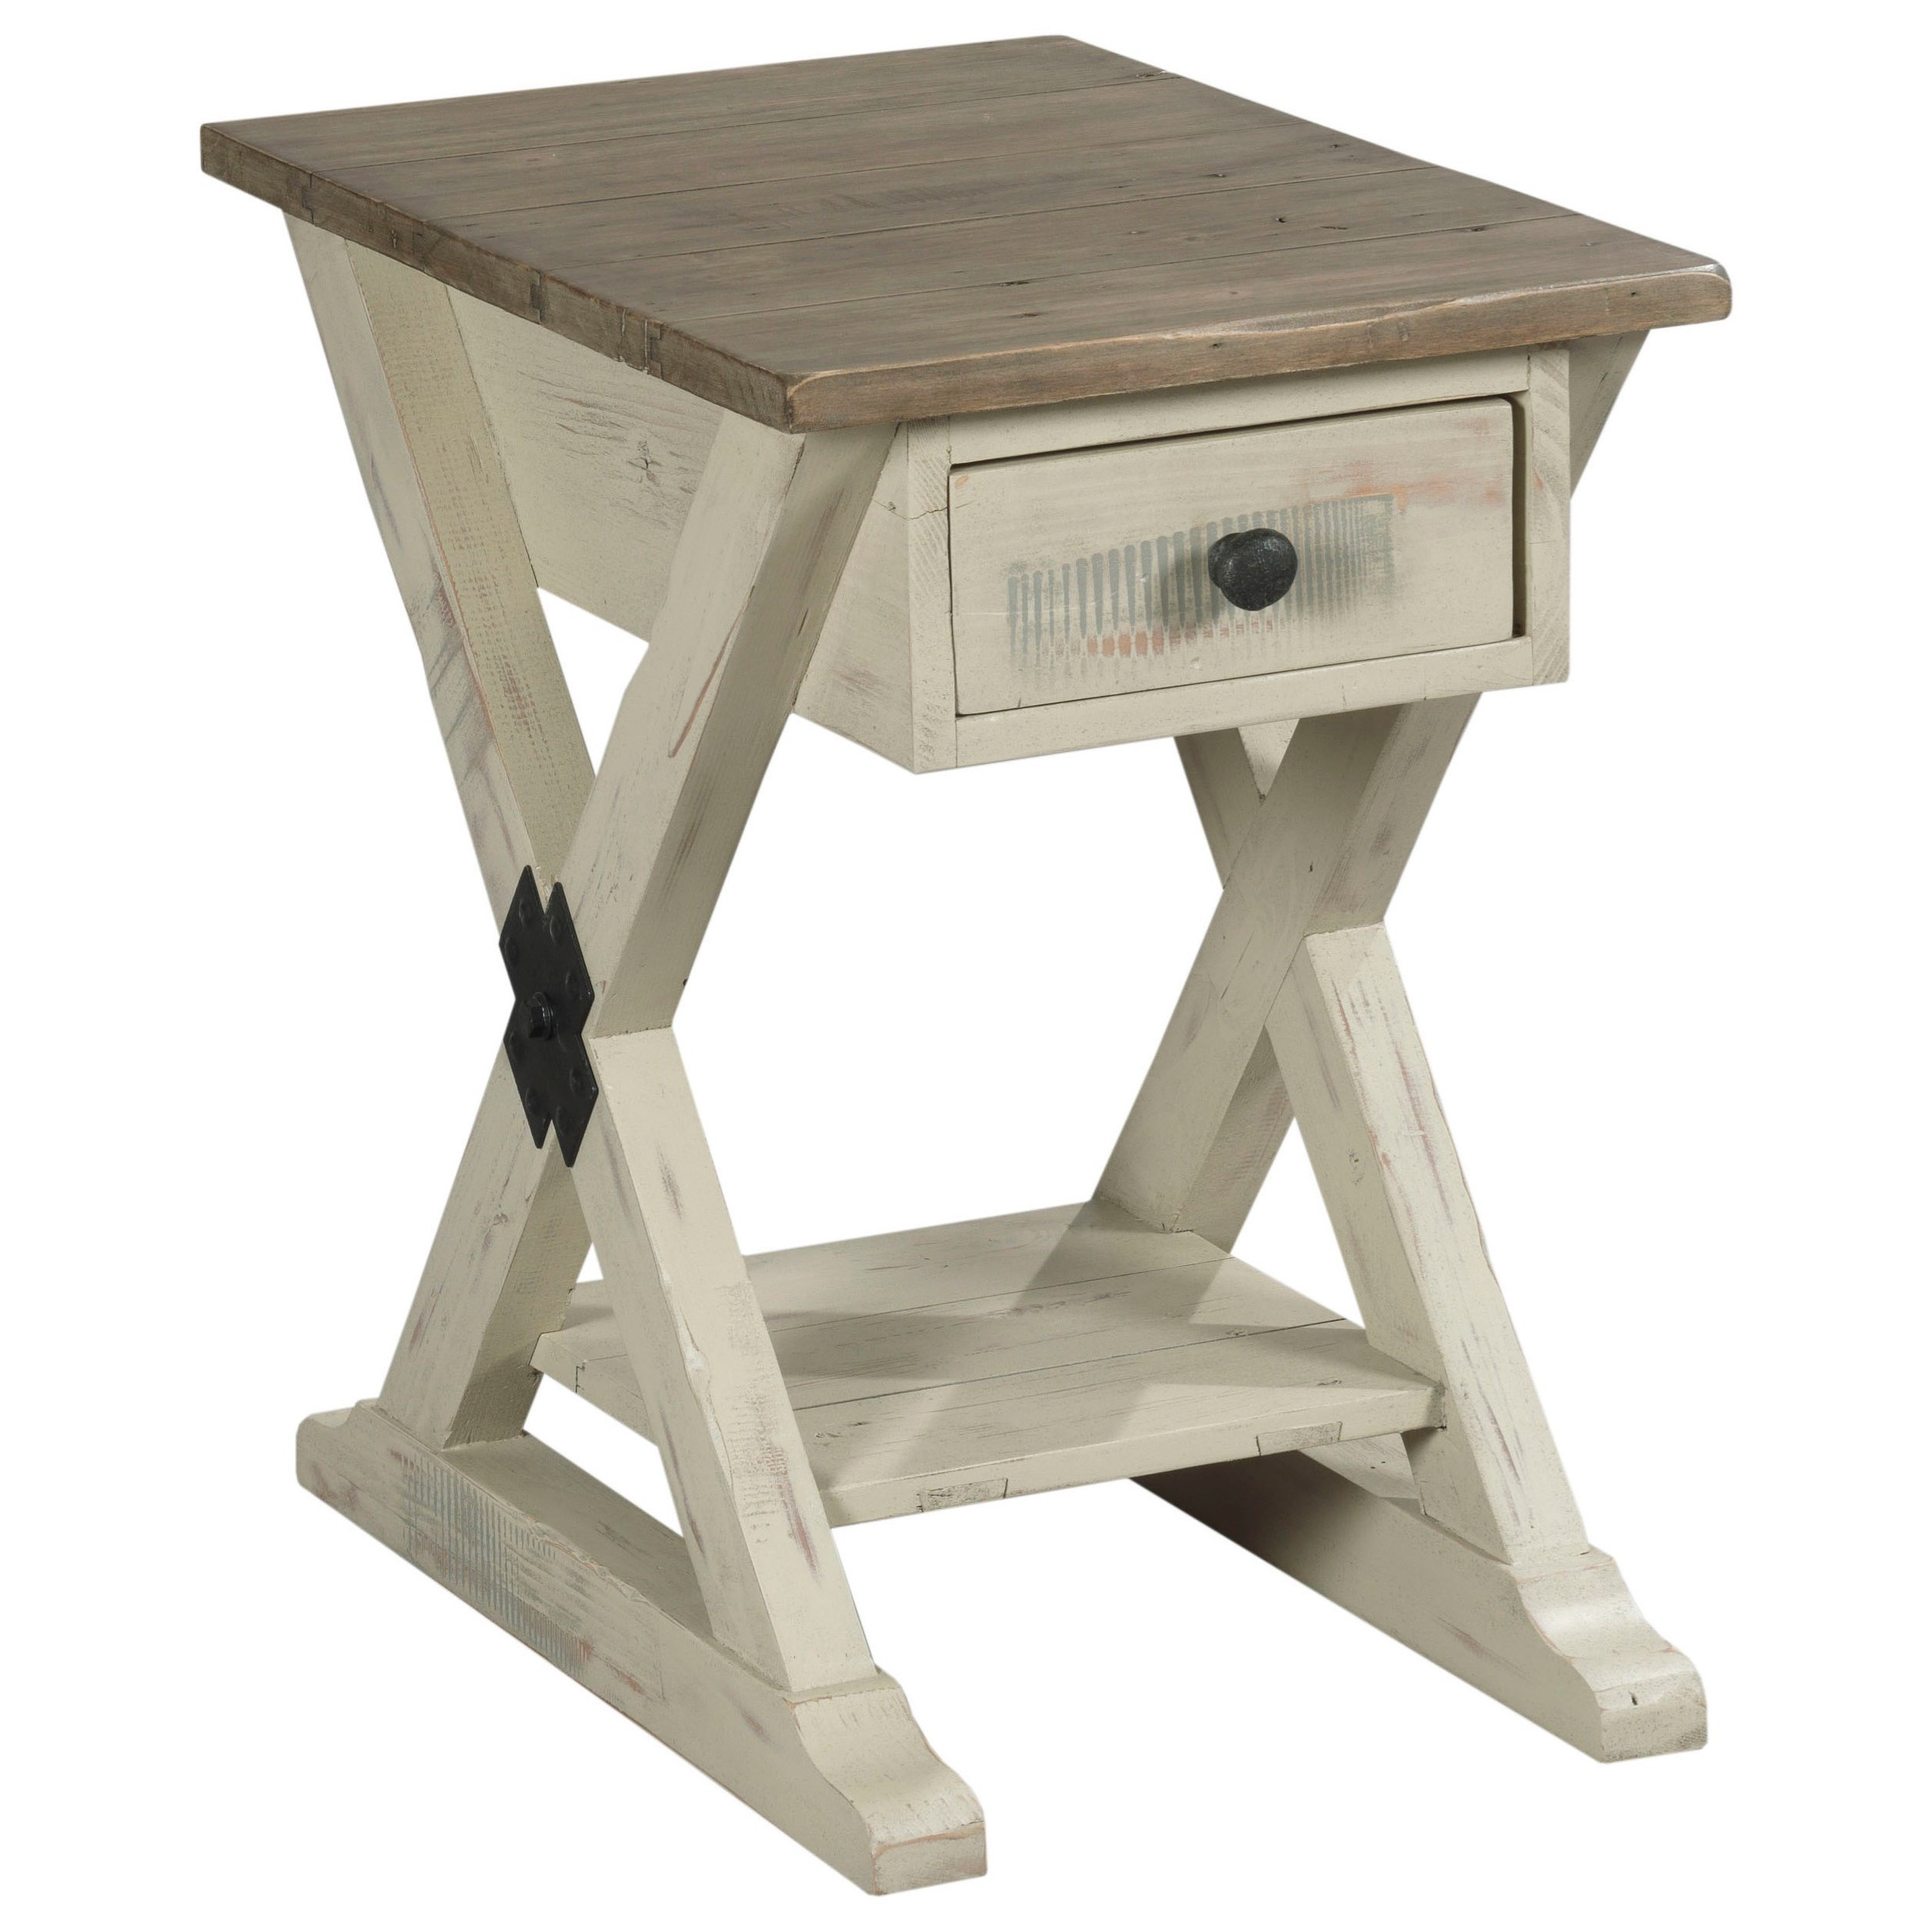 Reclamation Place                                  Chairside Table by Hammary at Alison Craig Home Furnishings